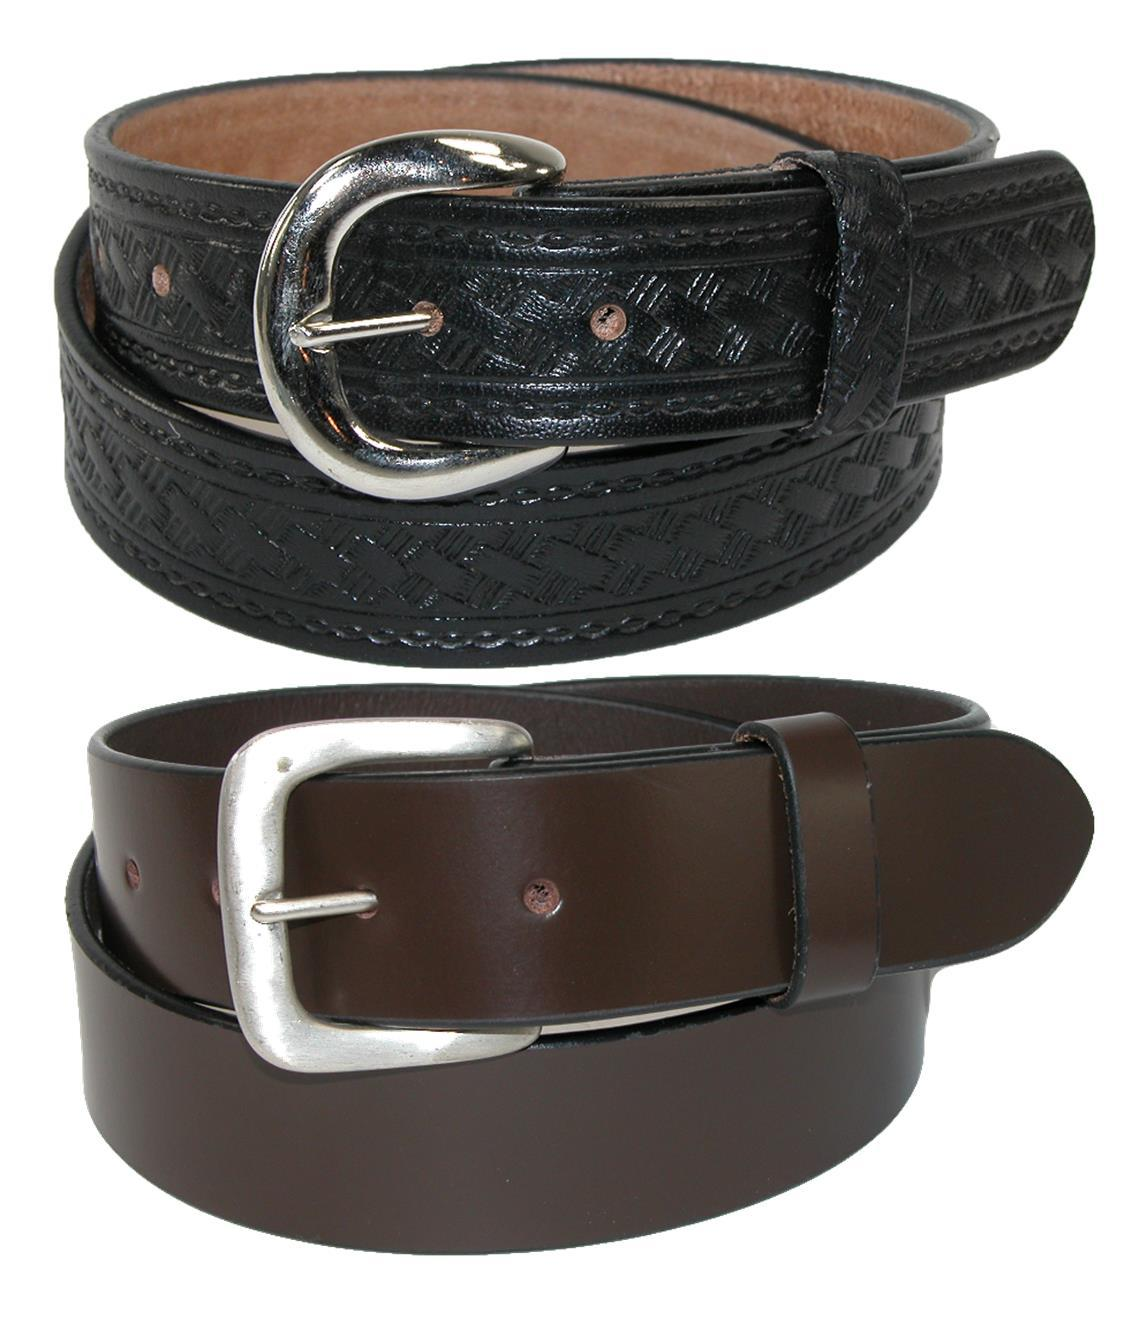 Ctm Mens Leather 1 3/8 Inch Removable Buckle Belts (pack Of 2)